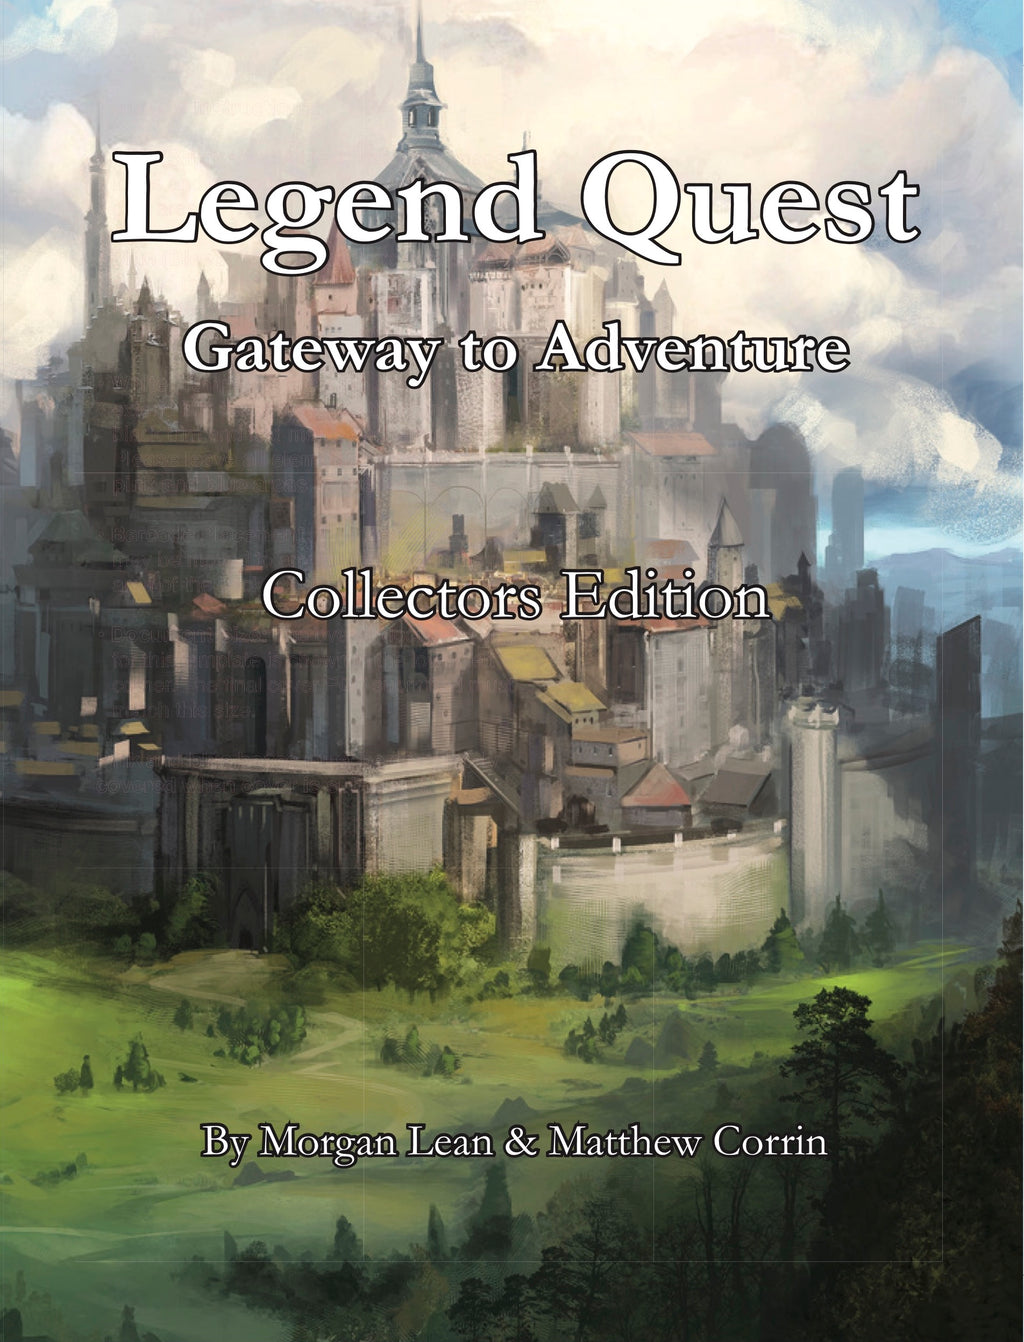 Legend Quest: Collector's Edition Hardcover Book